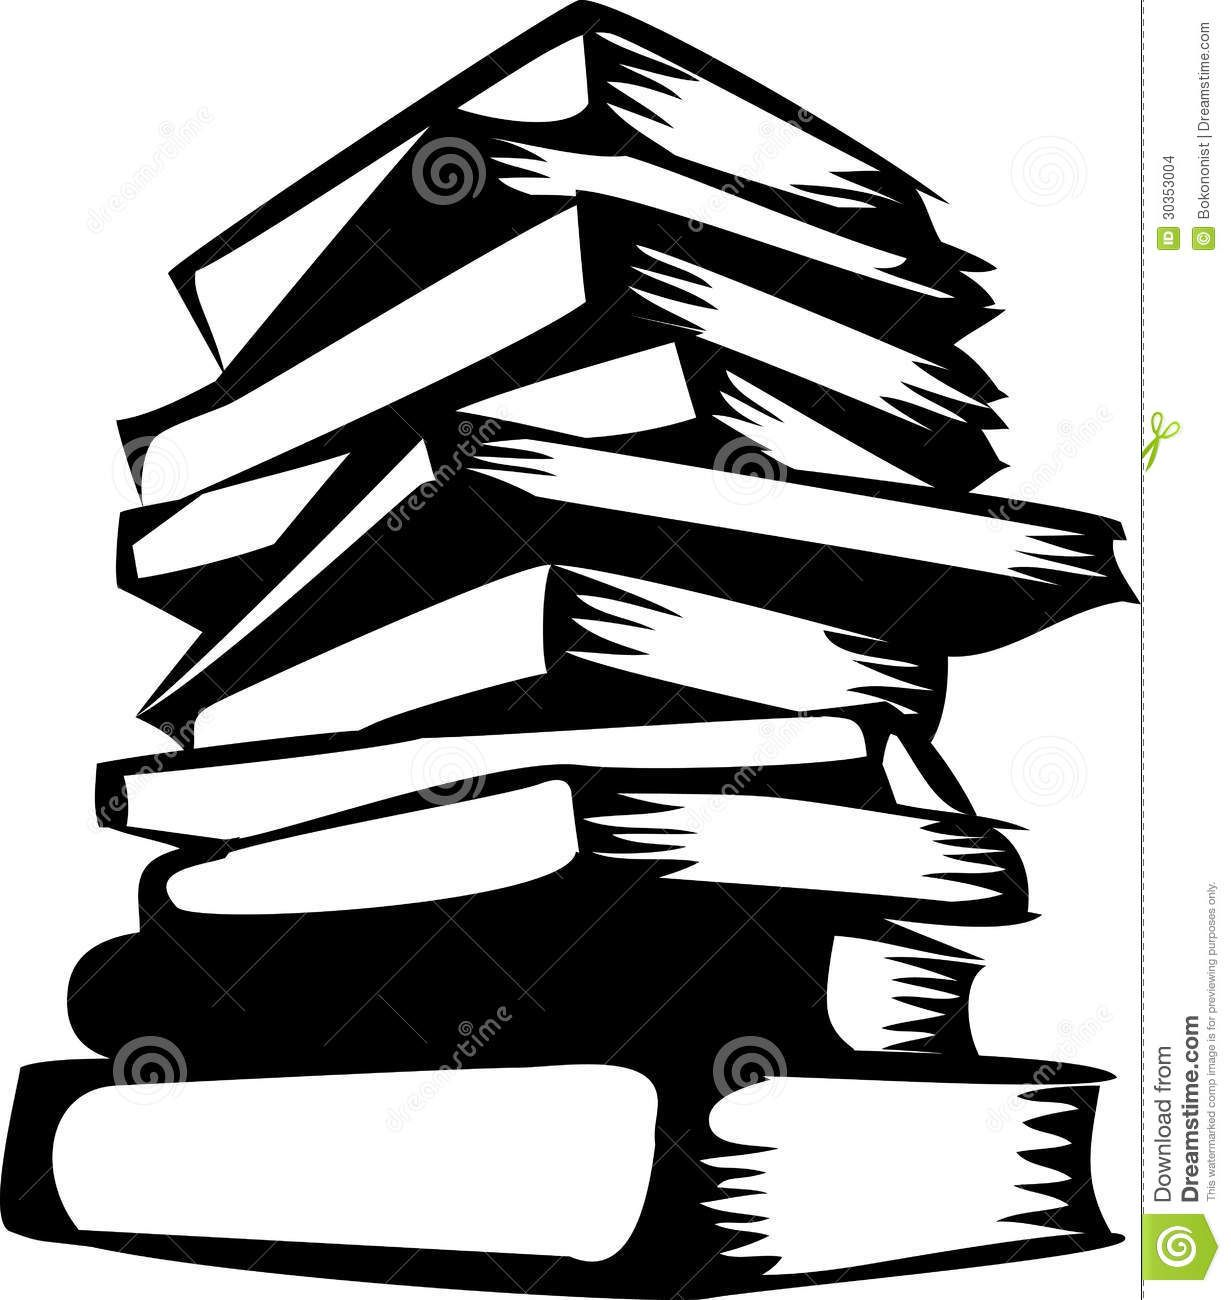 hight resolution of stacked books silhouette use these free images for your websites art projects reports and